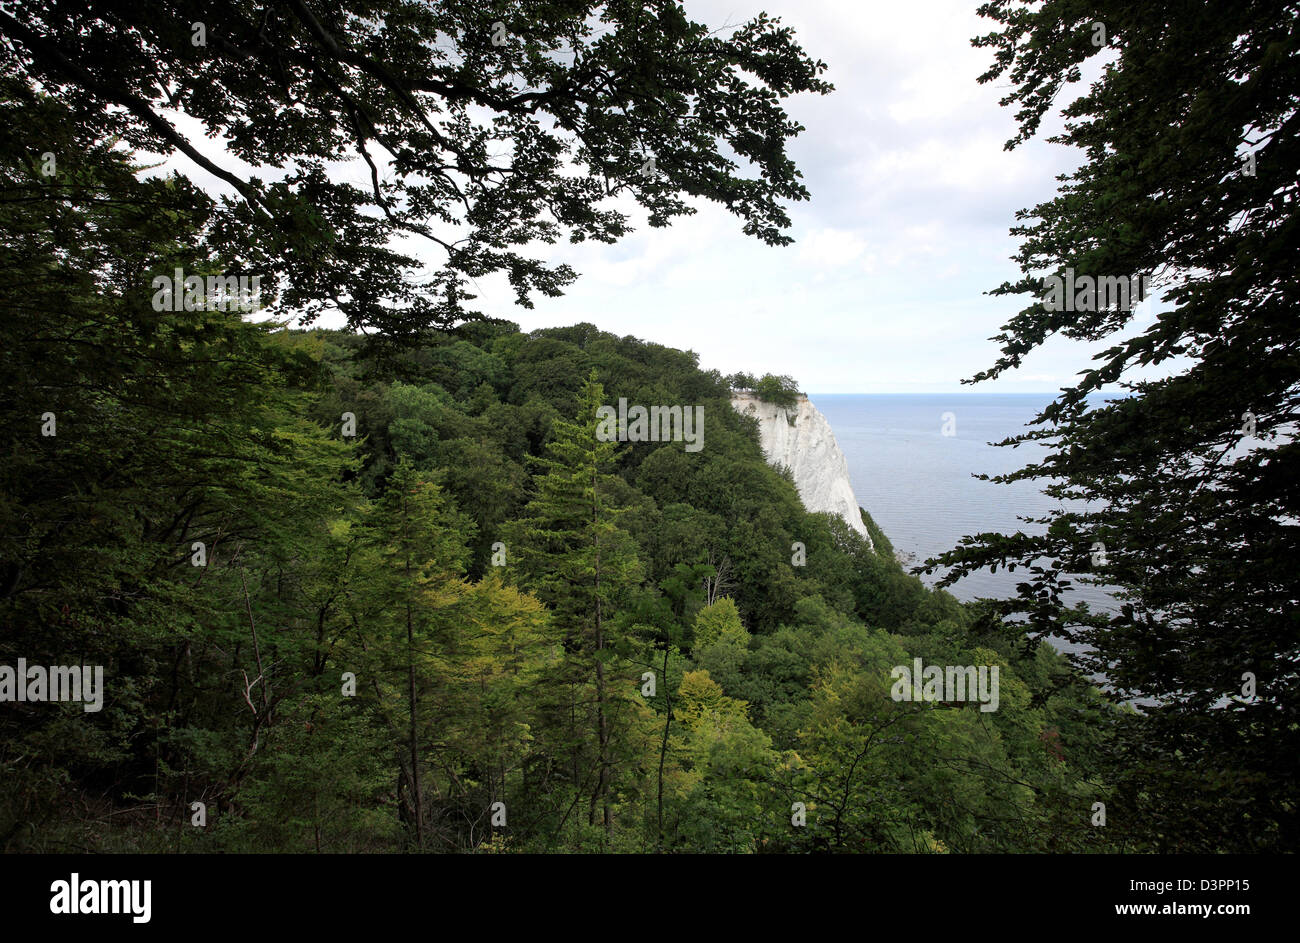 Jasmund Germany the king chair of the Victorian view of view - Stock Image & King Chair Stock Photos u0026 King Chair Stock Images - Alamy